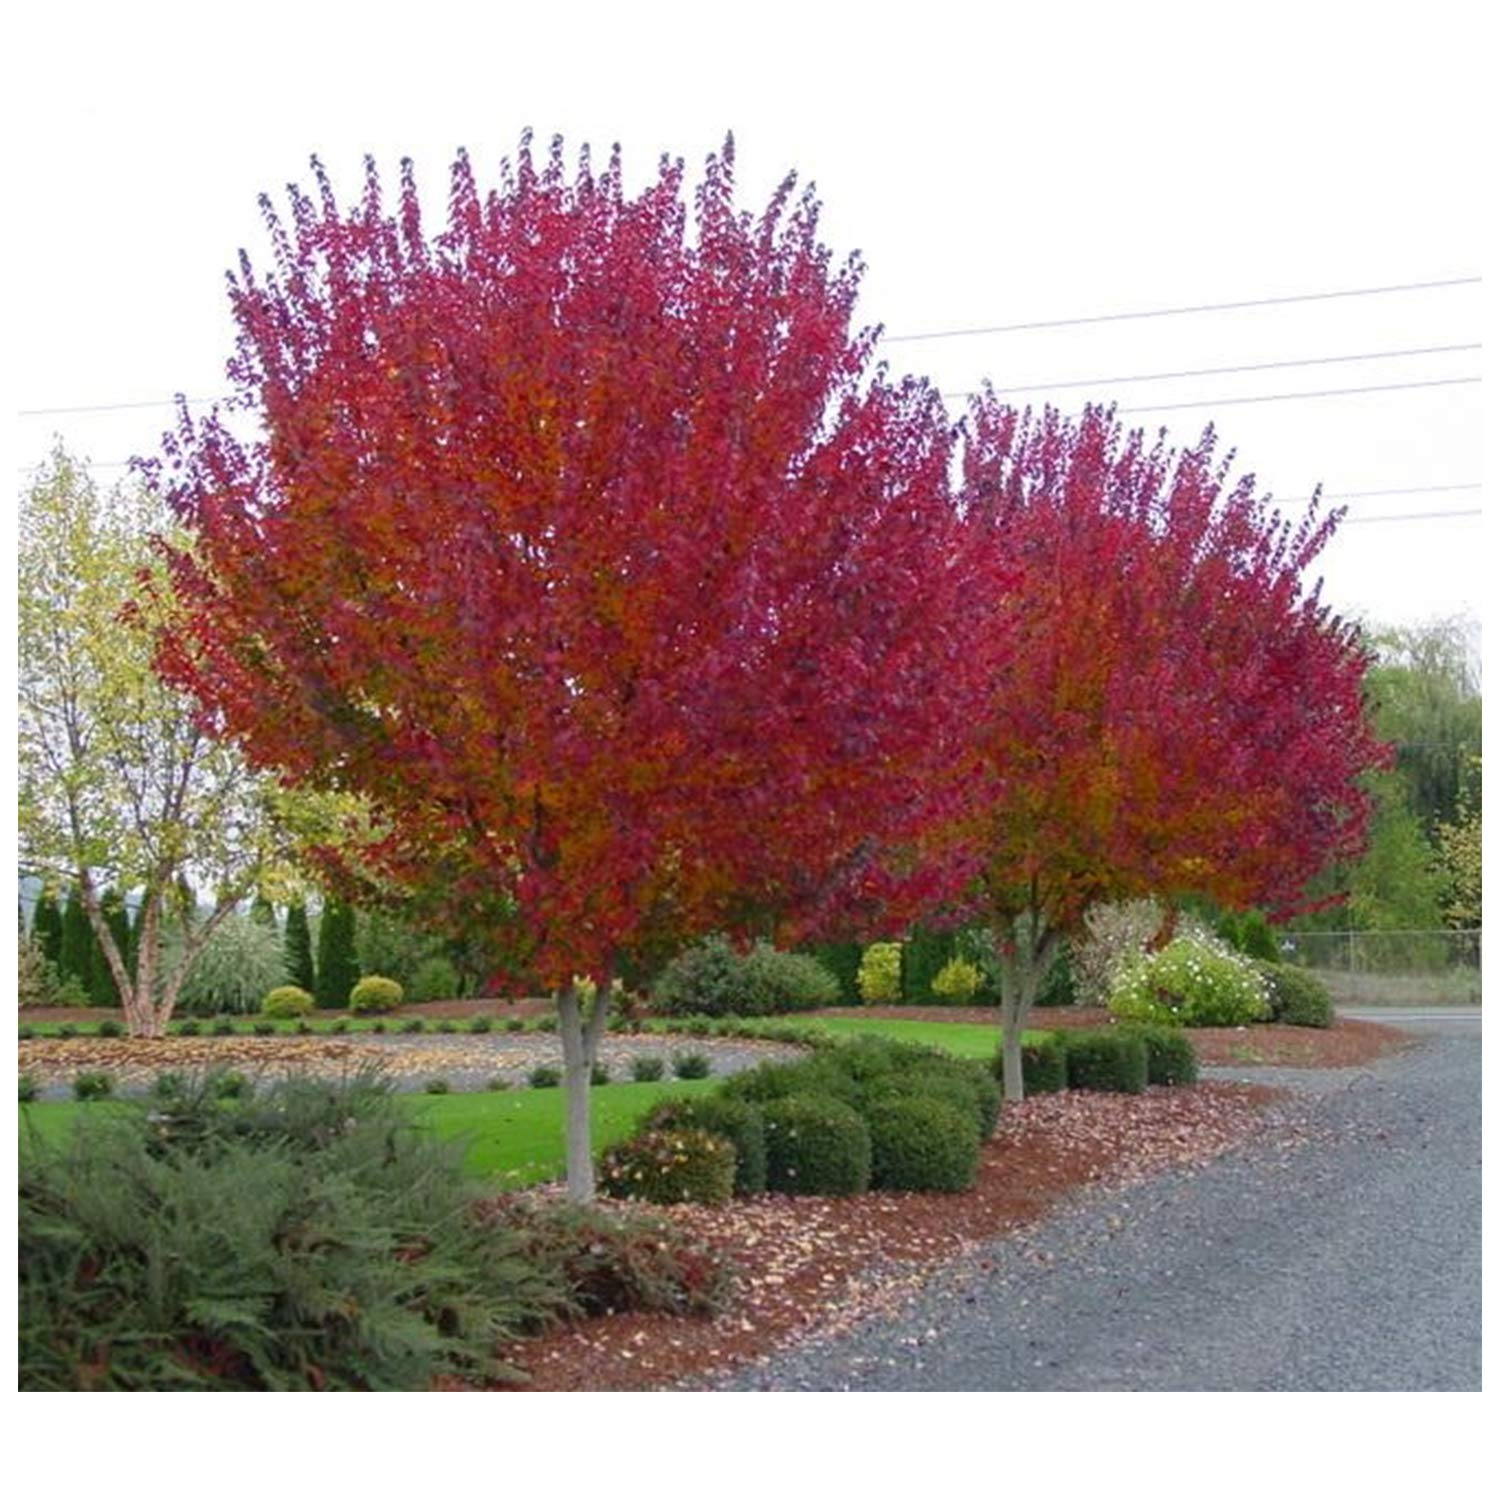 Burgundy Belle Maple Tree - Acer rubrum ''Magnificent Magenta'' - Heavy Established Roots - Two Gallon Potted - 1 Plant by Growers Solution